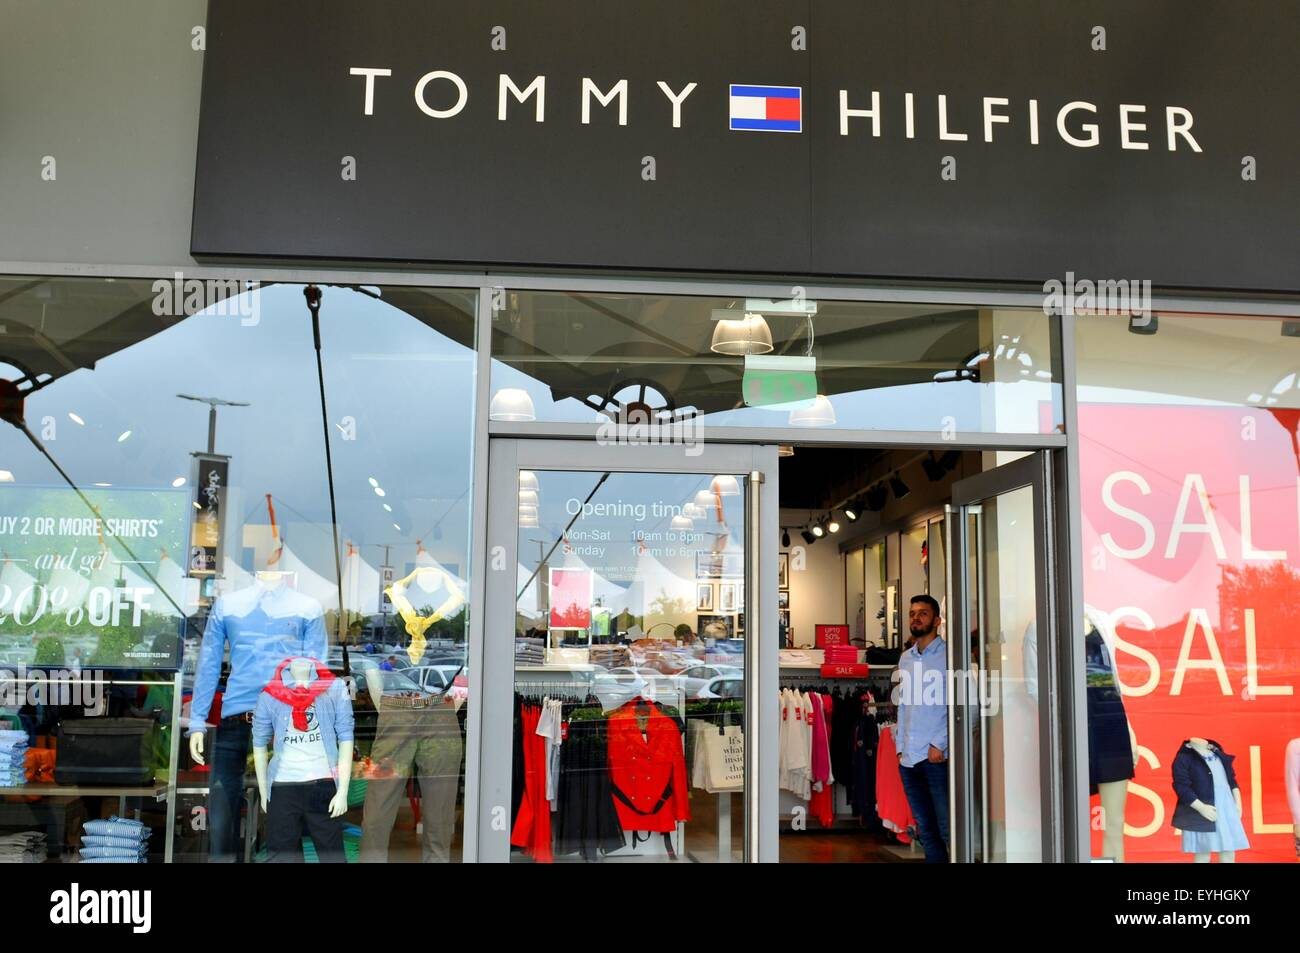 ee765cad London, UK - June 14, 2015: People pass by the Tommy Hilfiger shop. Tommy  Hilfiger is a famous worldwide American fashion